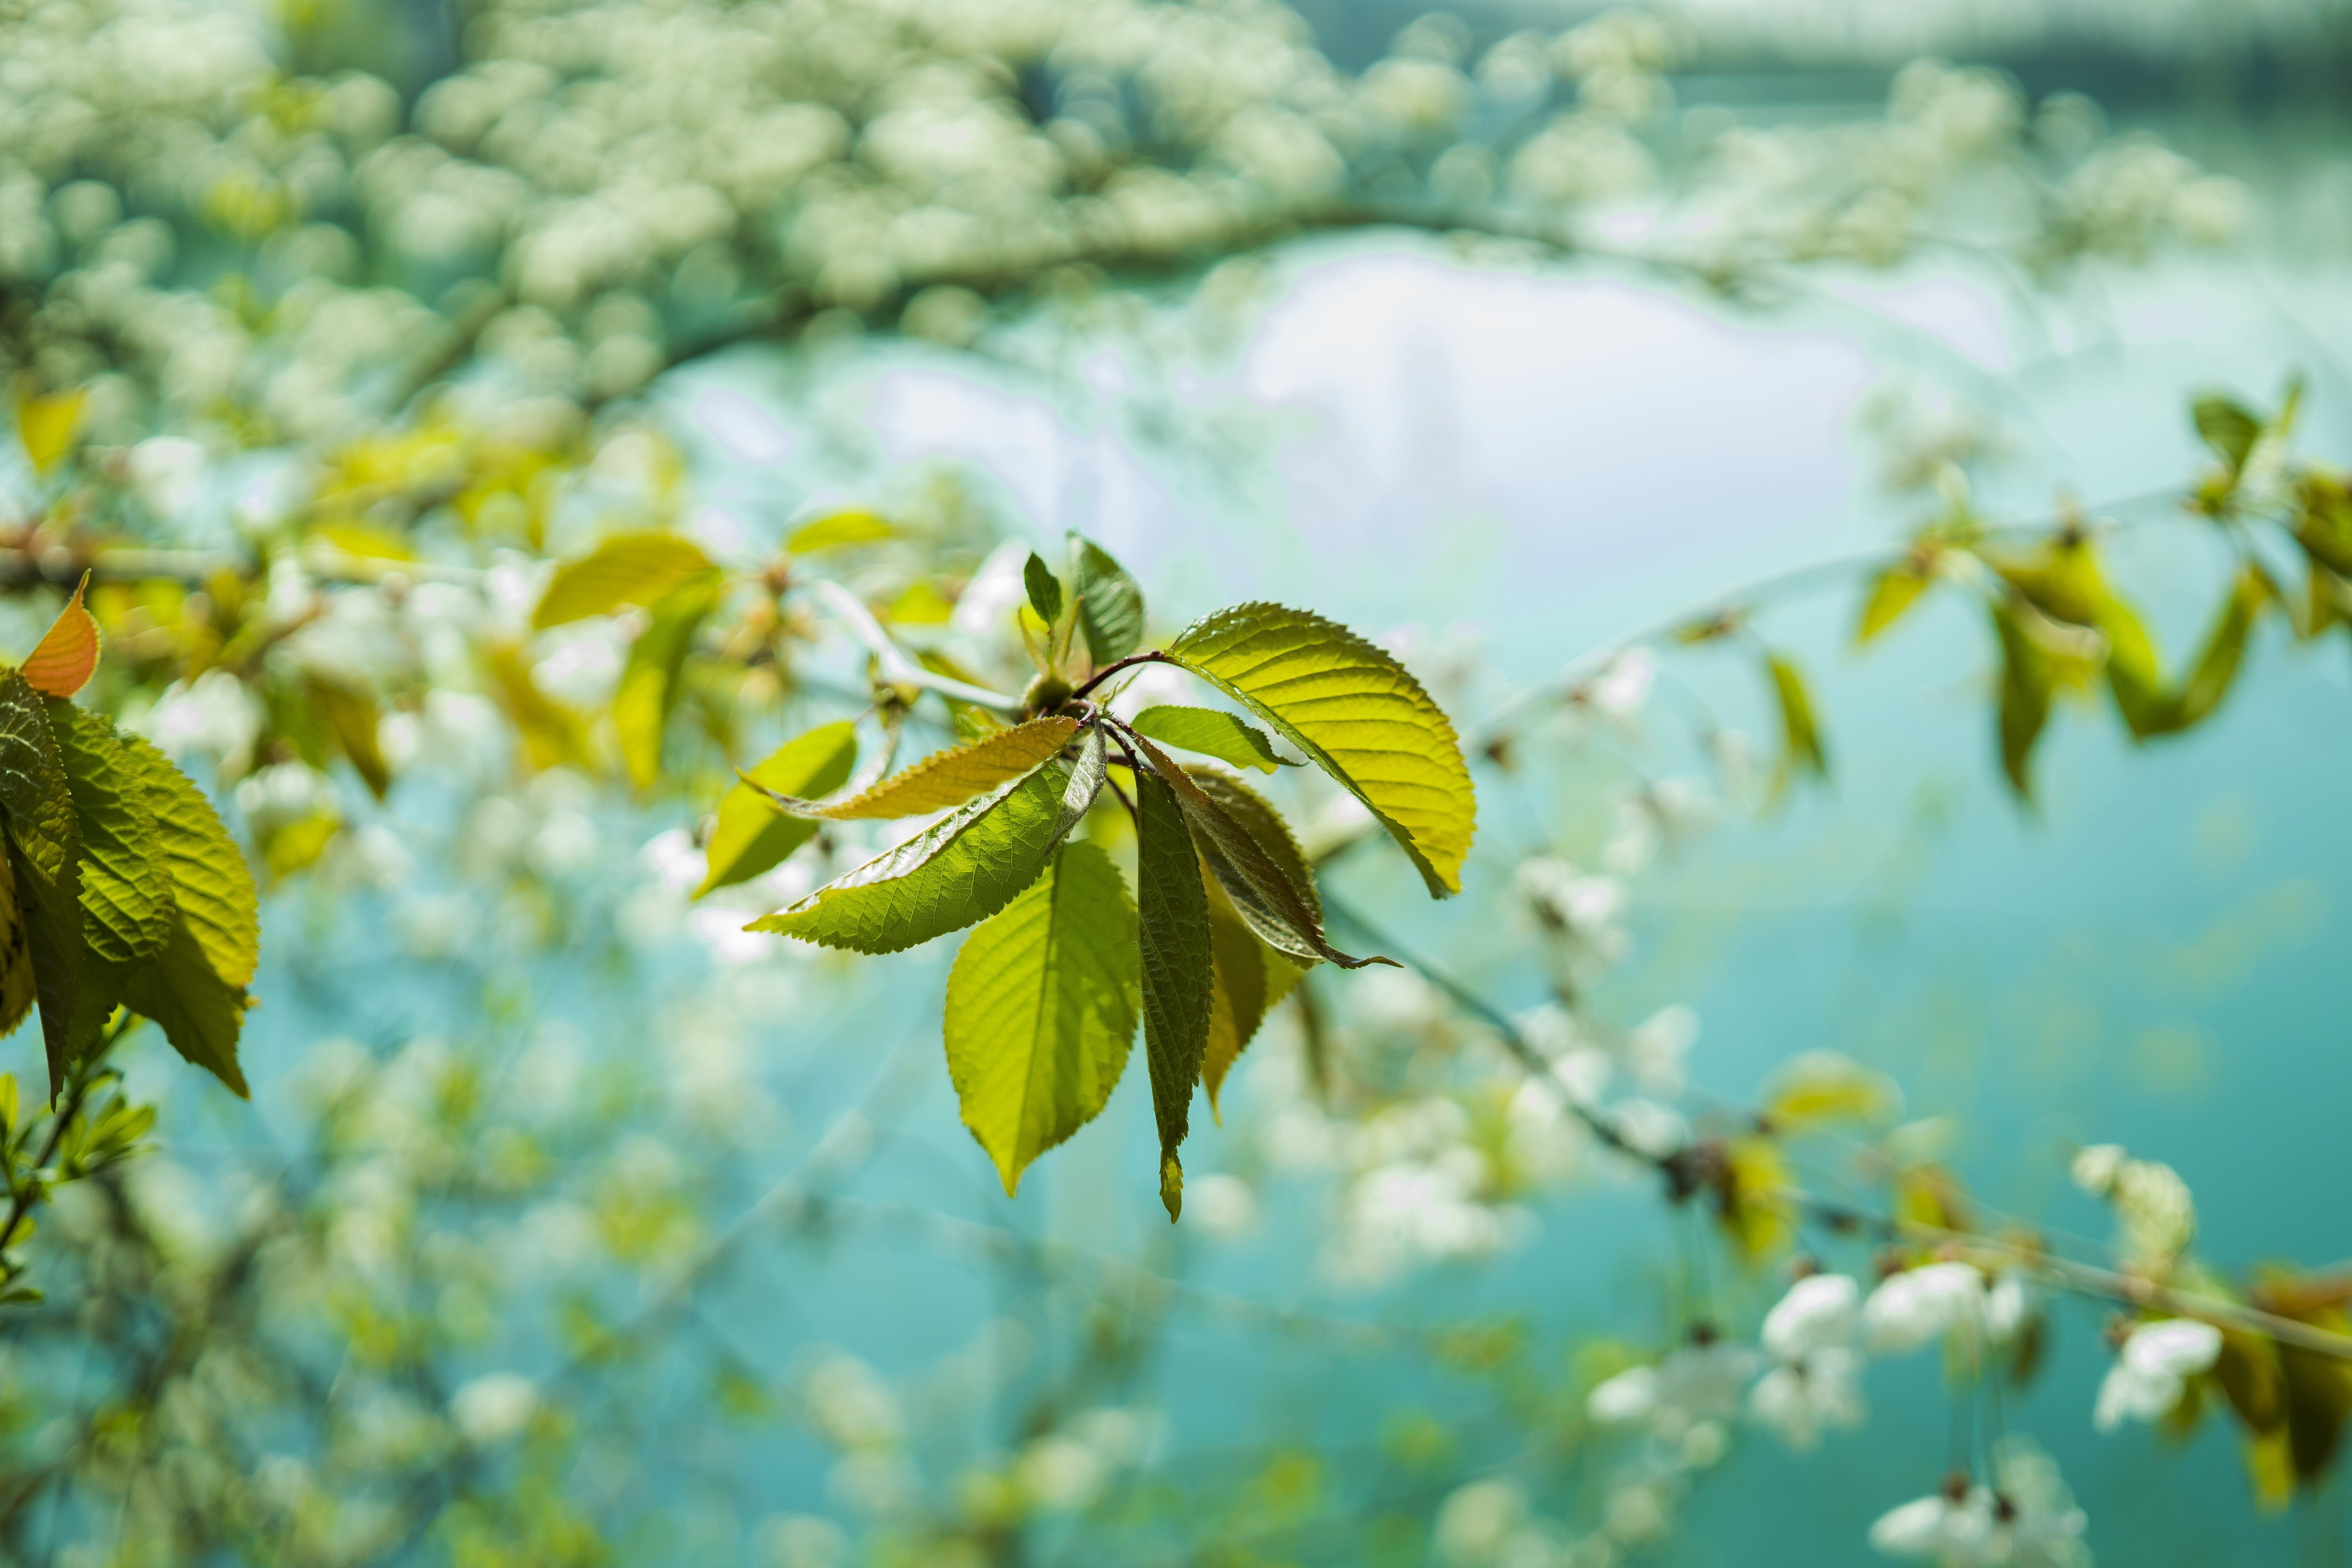 Cherry Blossom Tree Near Lake in Close Up Photography